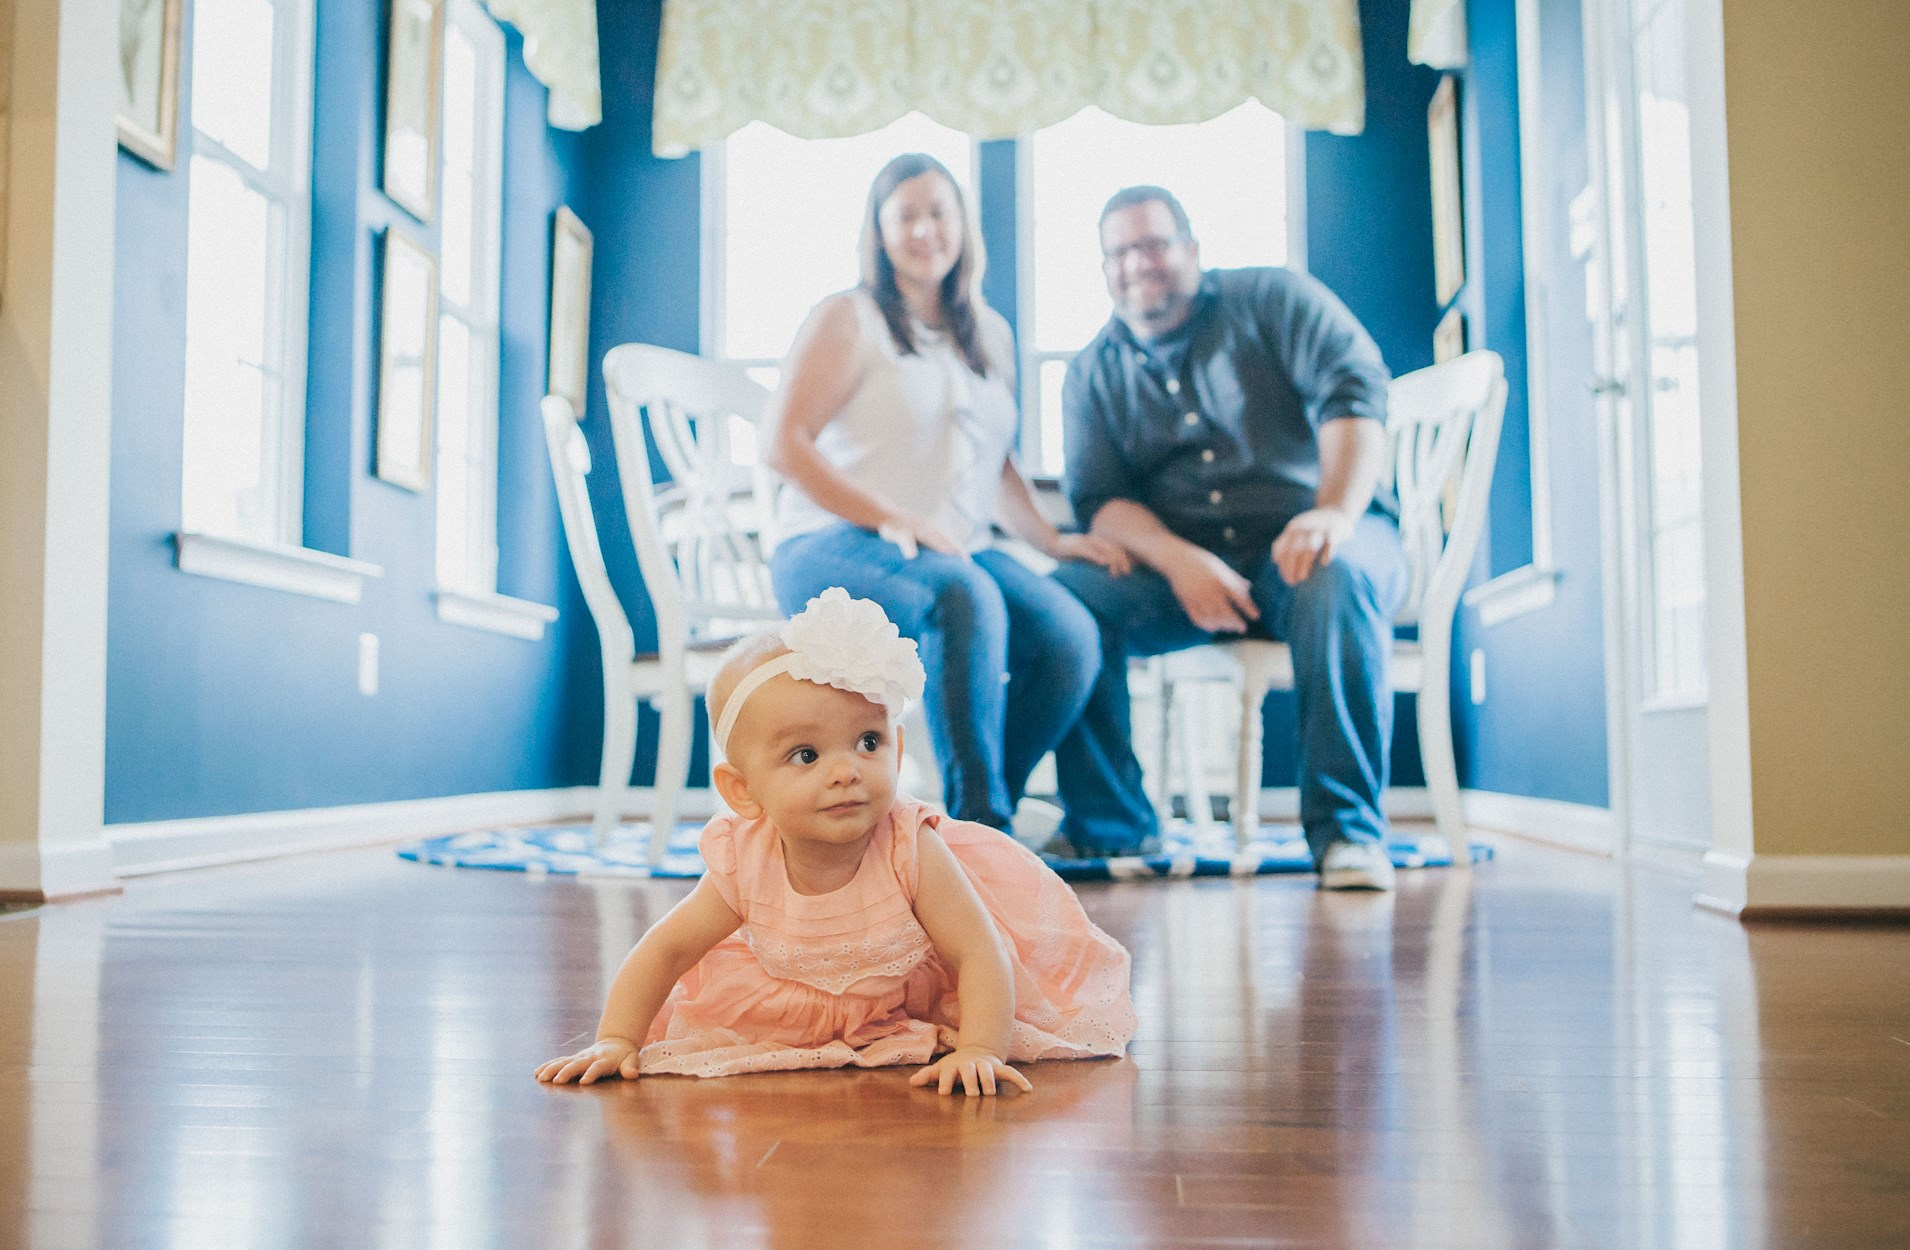 A baby girl crawling on the floor of a new home